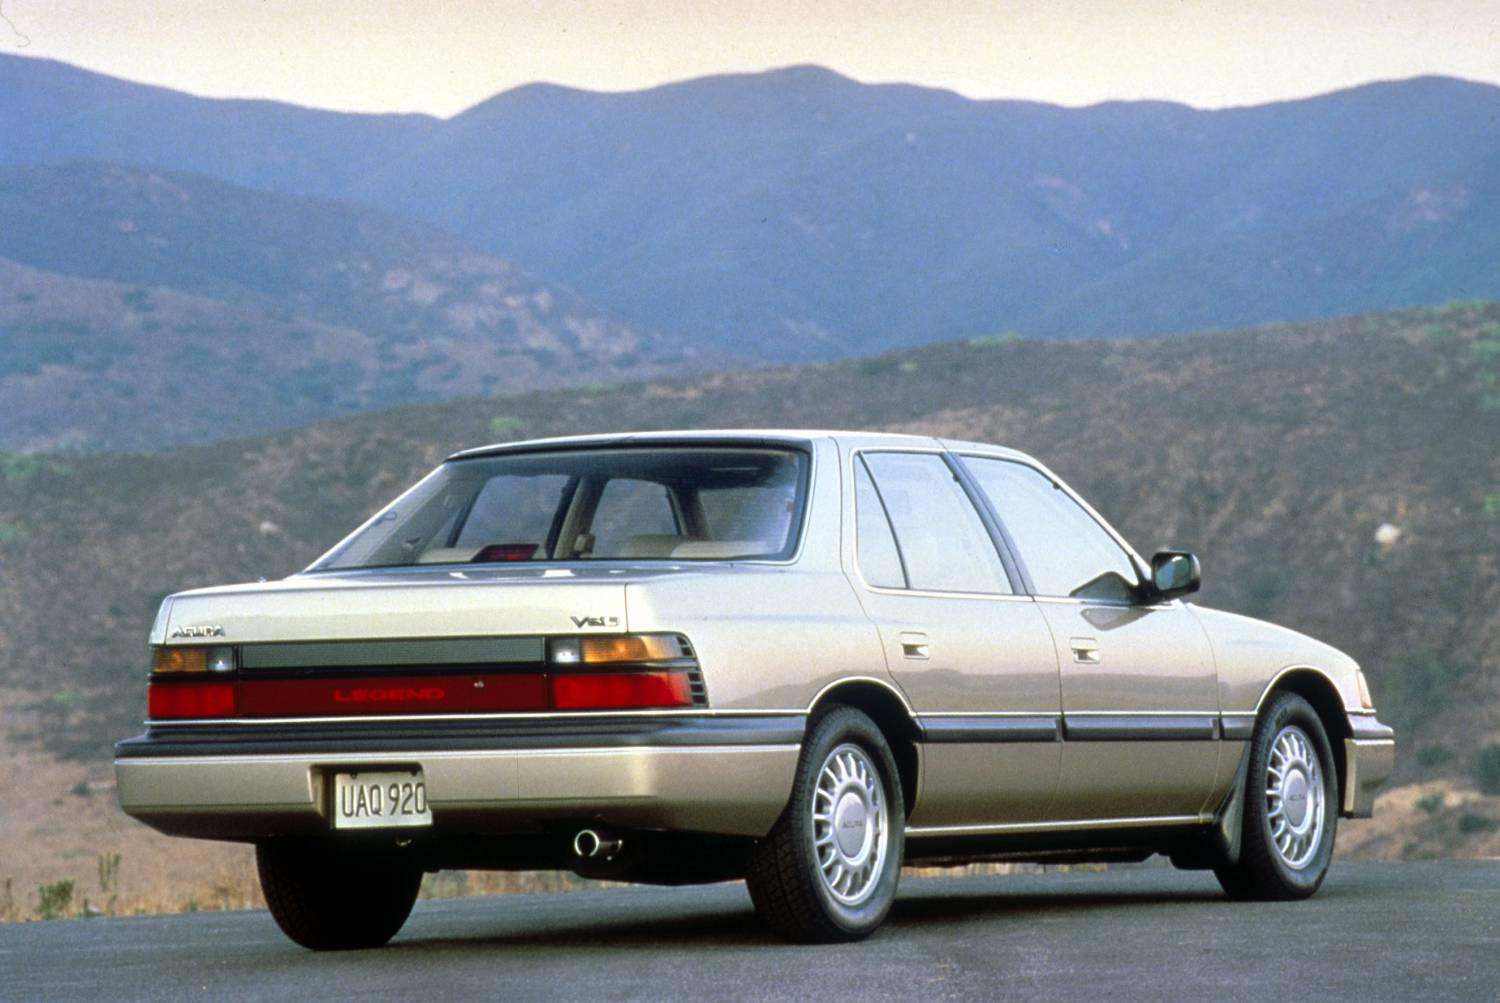 1986 Honda Legend #16